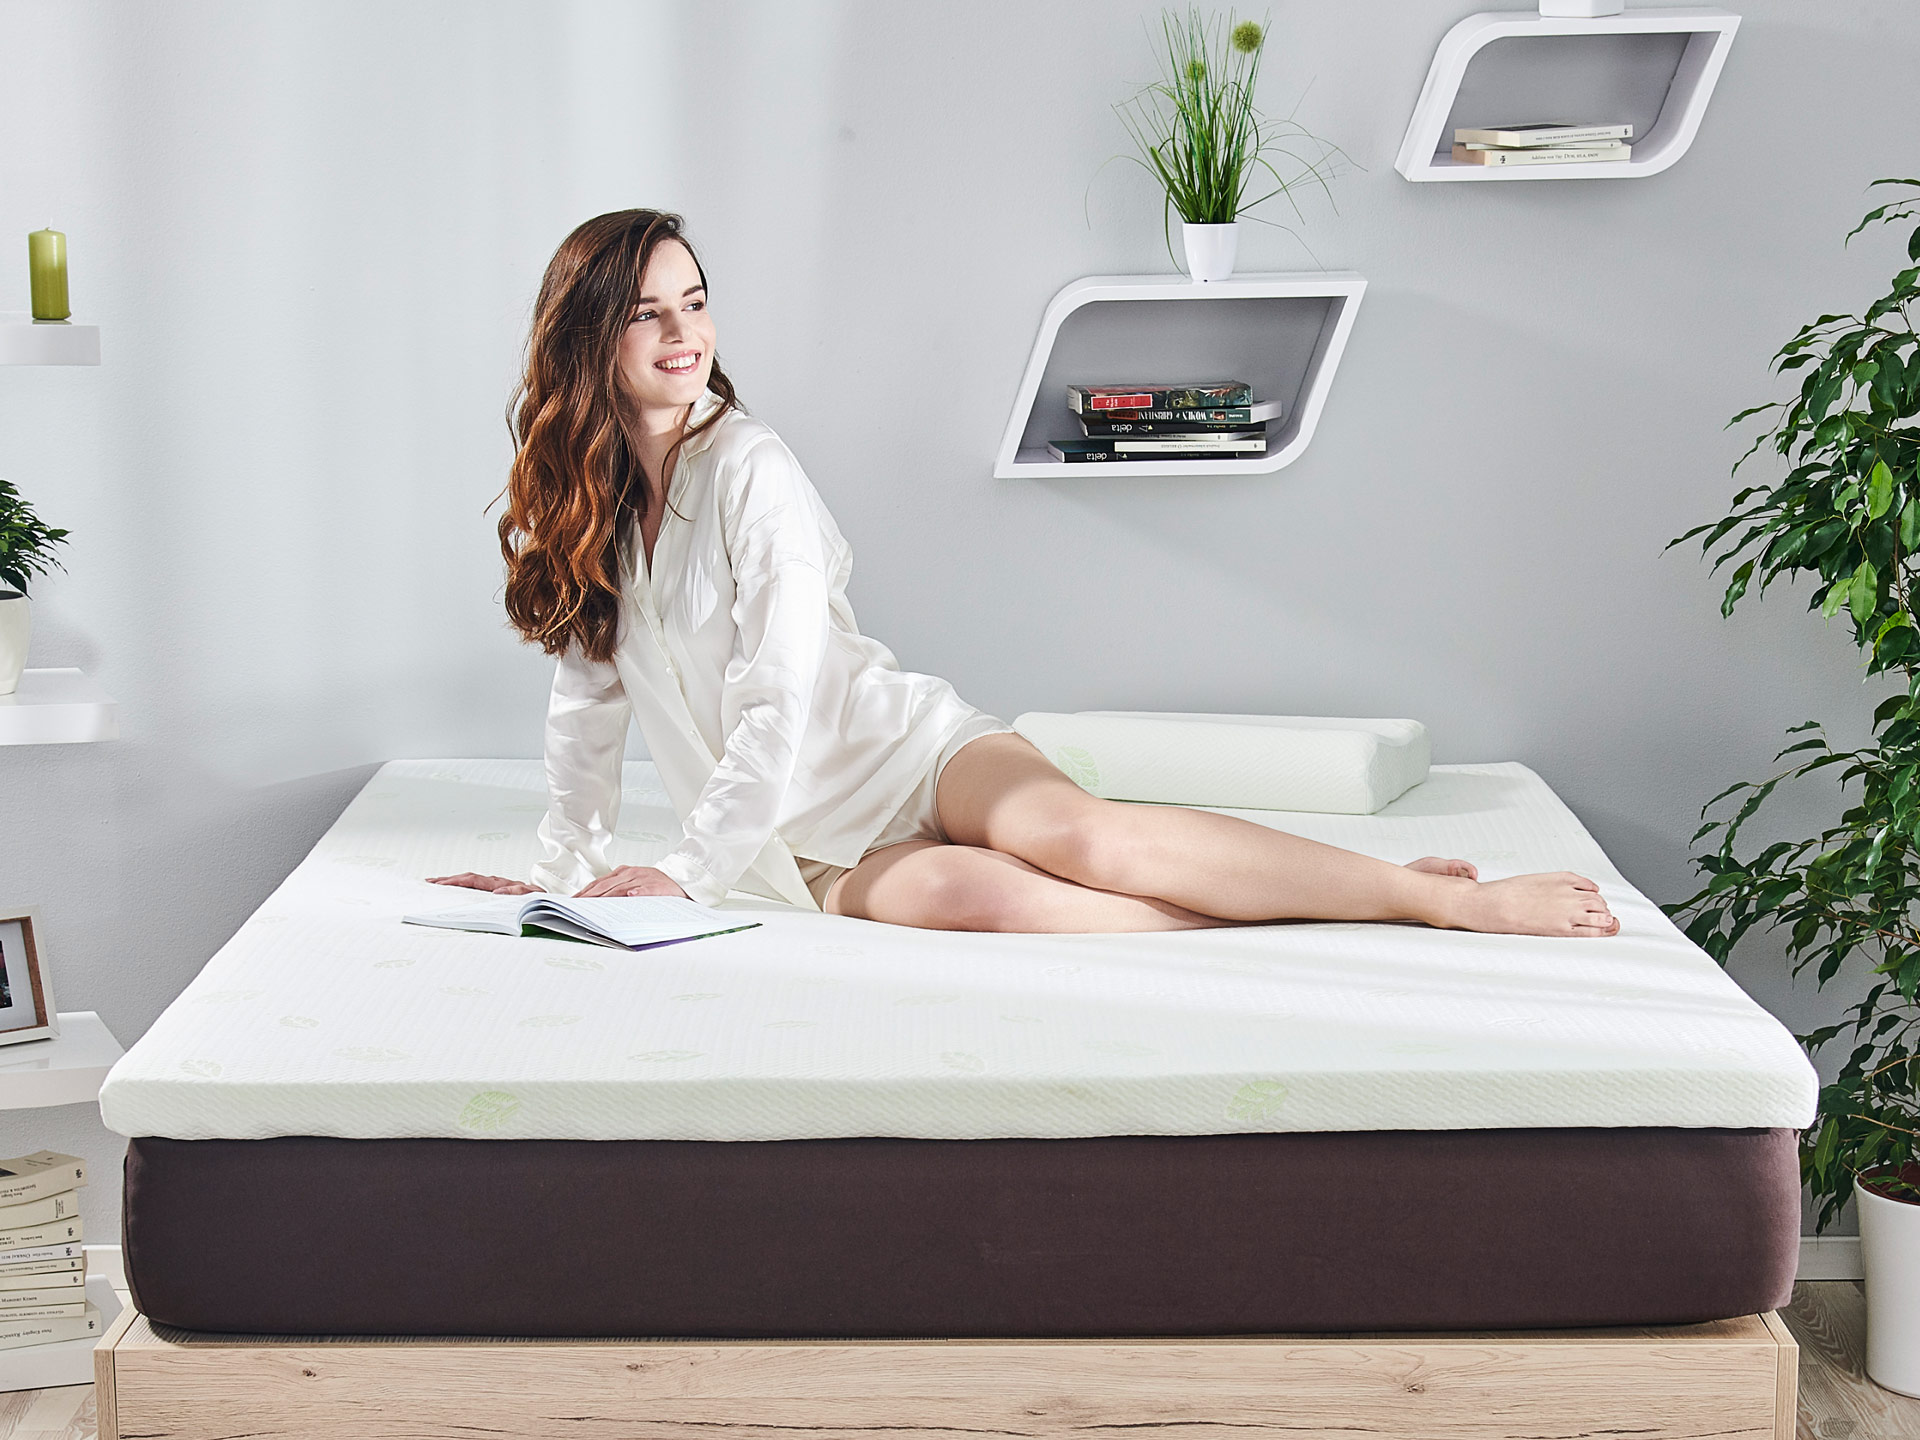 Signs Of Your Dormeo Mattress Demise